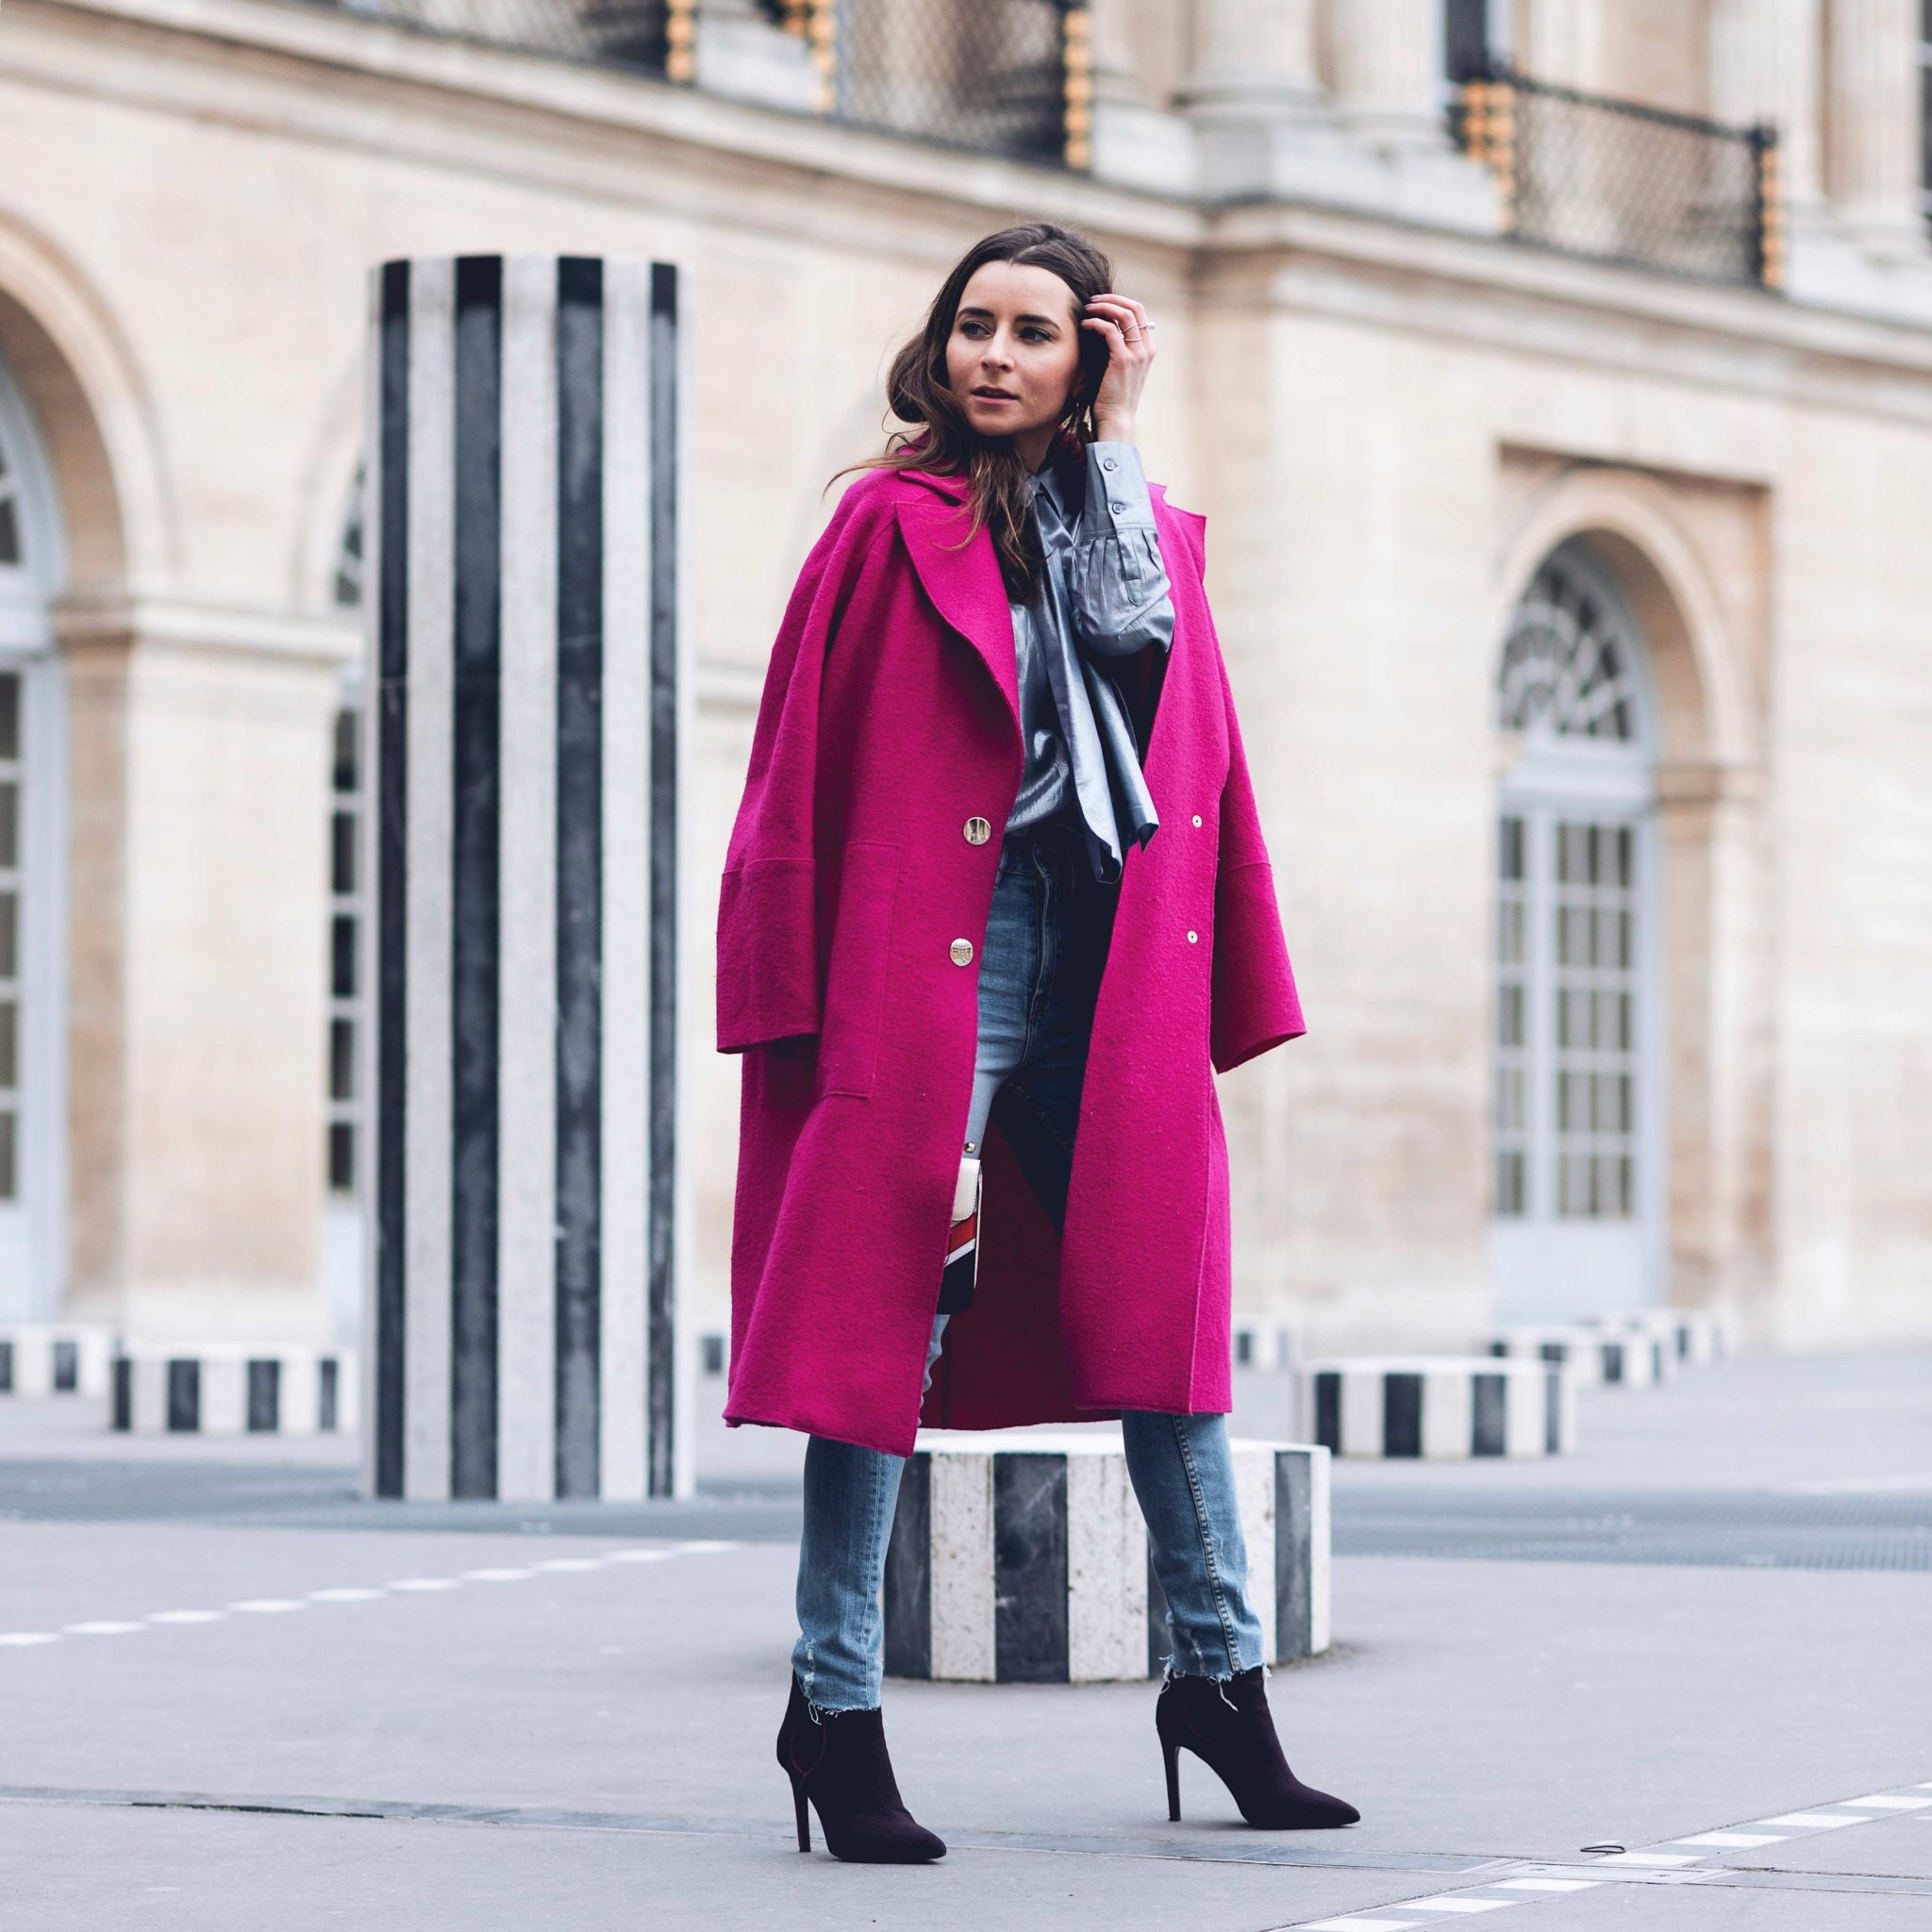 Best Street Style Paris Fashion Week Mars 2018 of Julia Comil / French Fashion Blogger in Los Angeles - Outfit for John Galliano Fall Winter 2018 2019 show - Pink Tara Jarmon Coat - Palais Royal